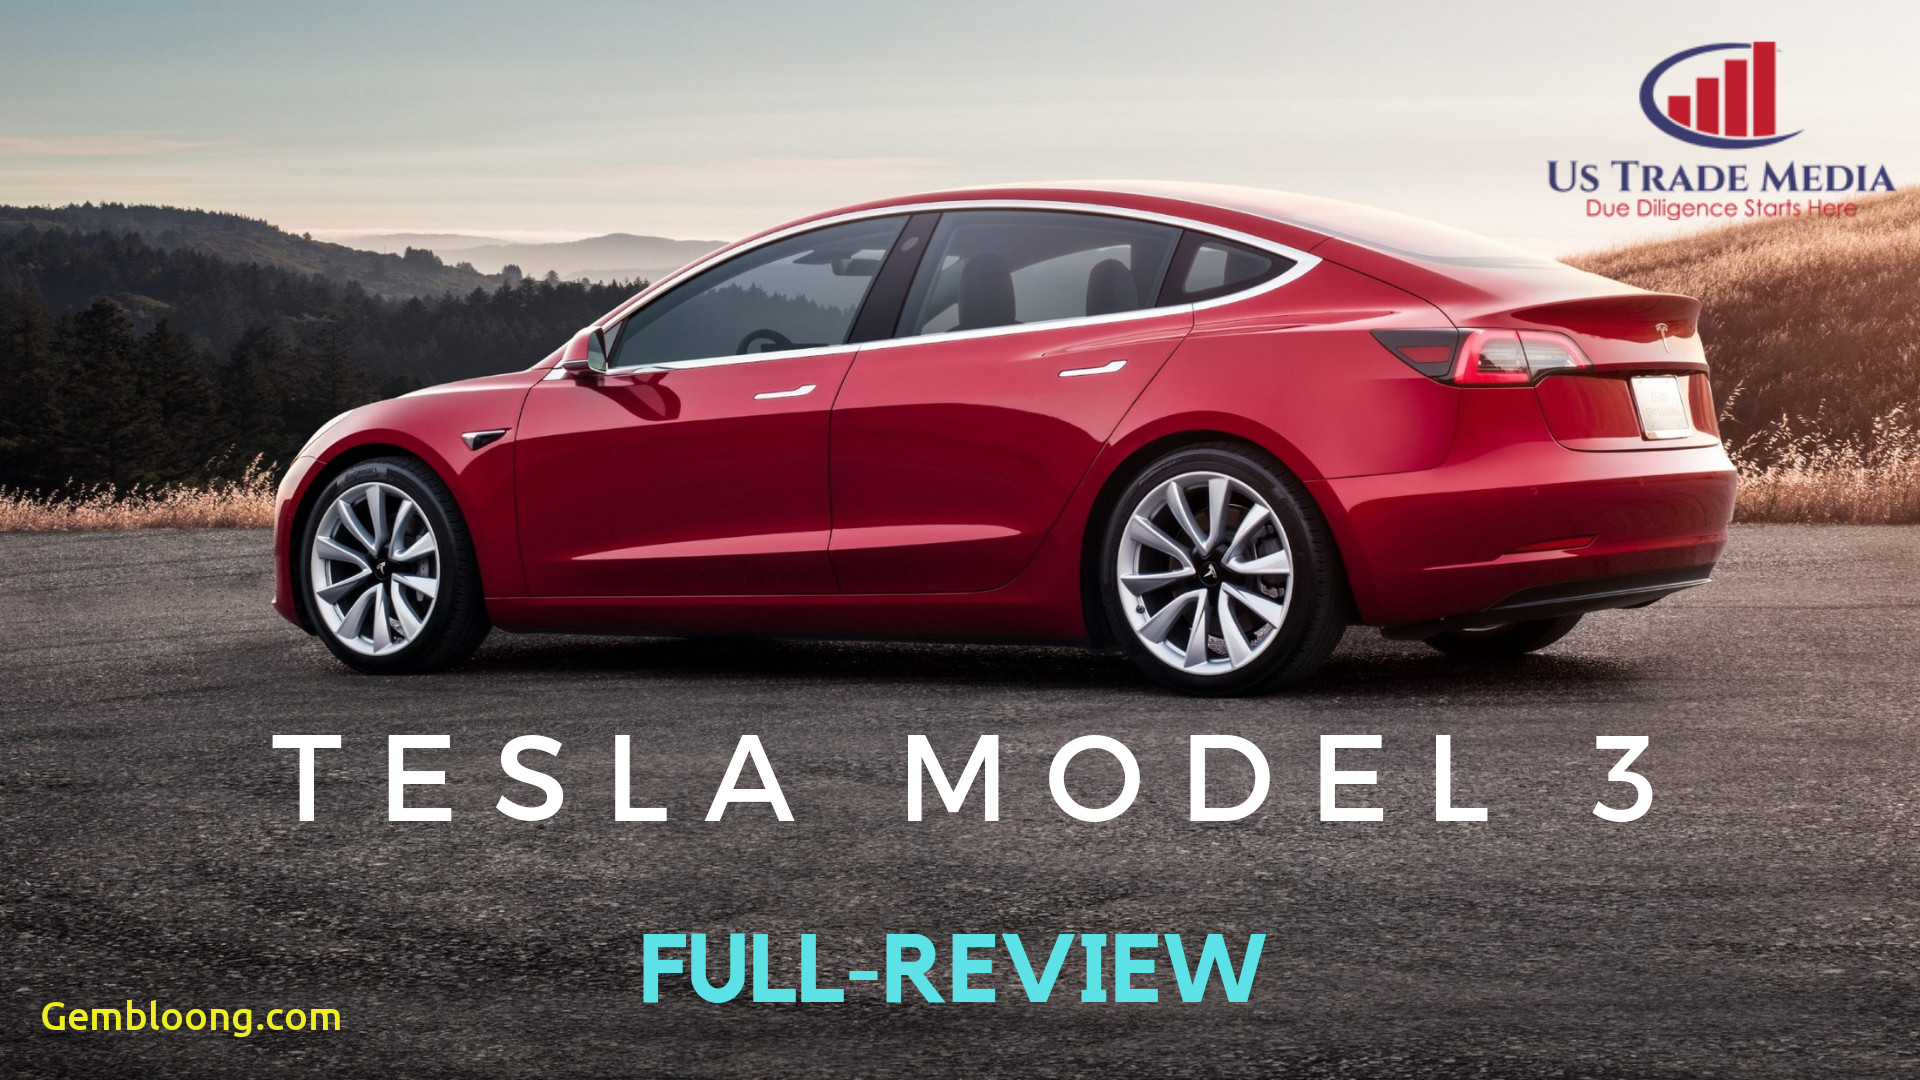 What Tesla Should I Get Fresh Reasons why You Should or Should Not Buy Tesla Model 3